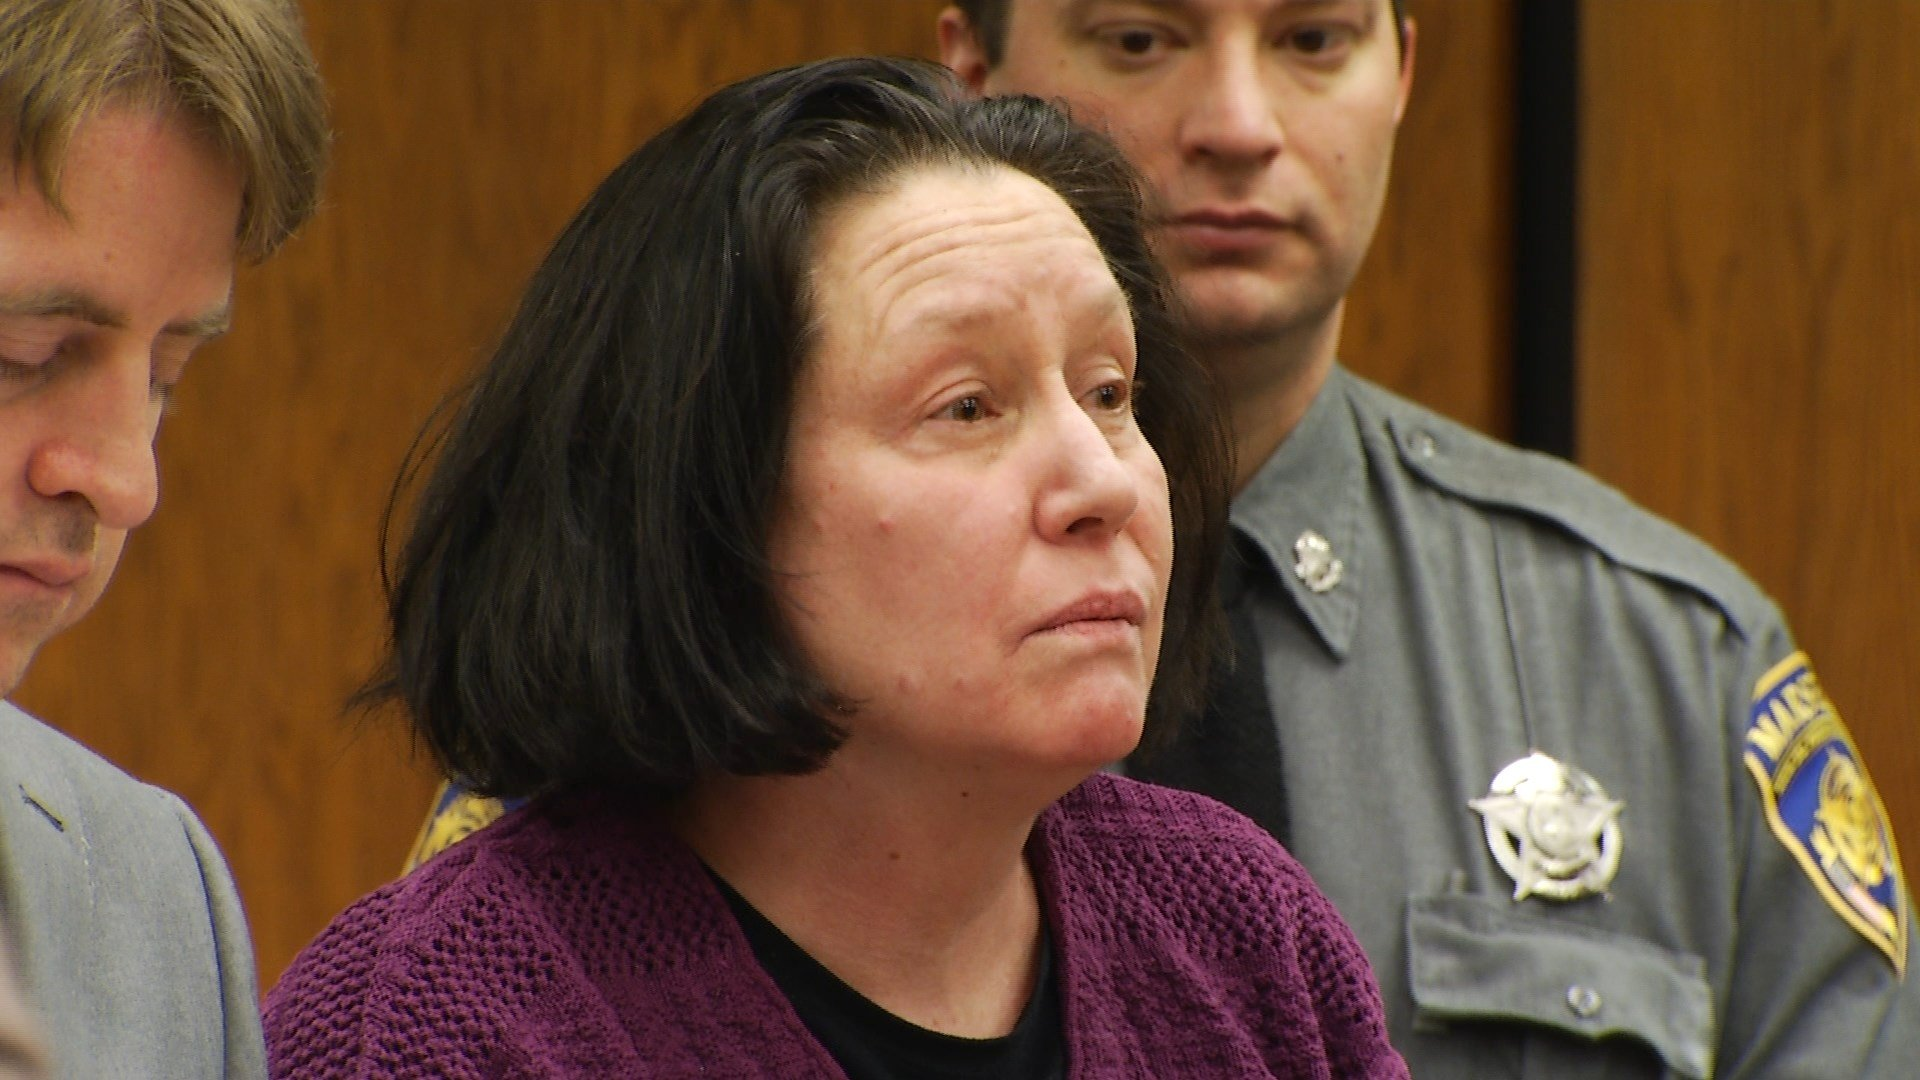 Eileen Marie Pierce faced a judge on Friday. (WFSB photo)